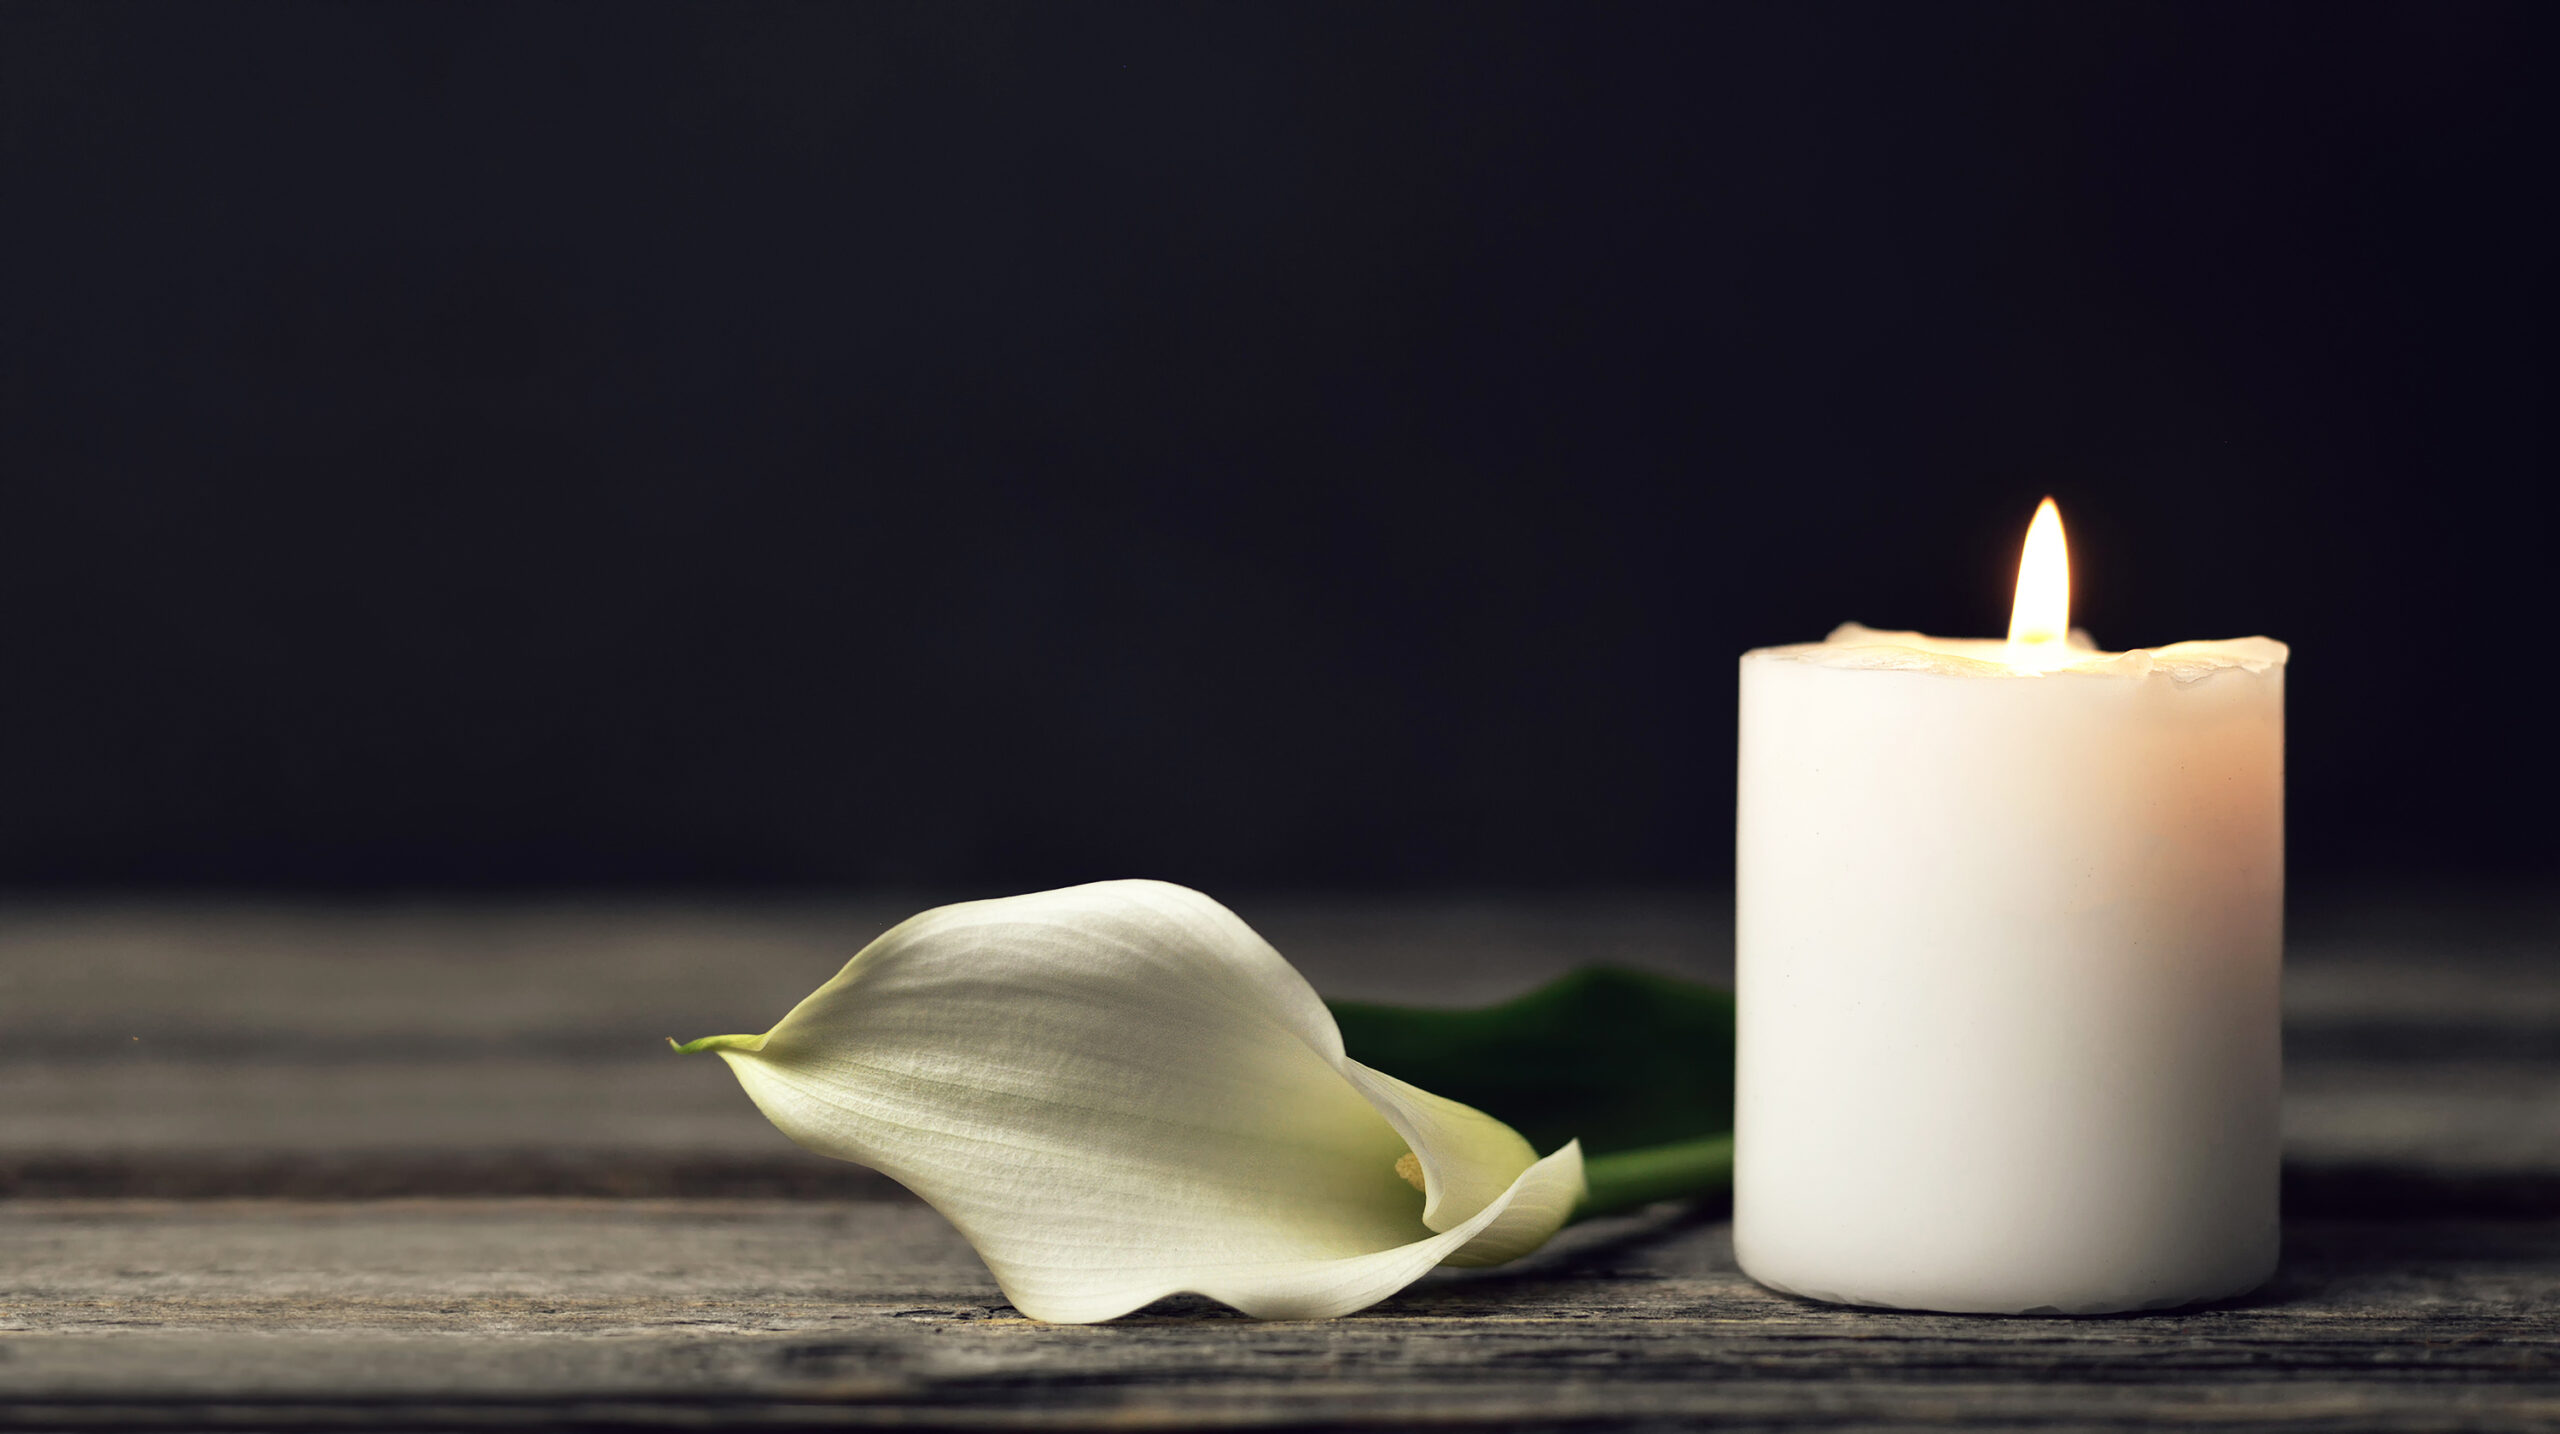 Expressing your sorrow for the loss of a loved one is hard in any language. Let us help make offering your deepest condolences in Arabic a little easier.